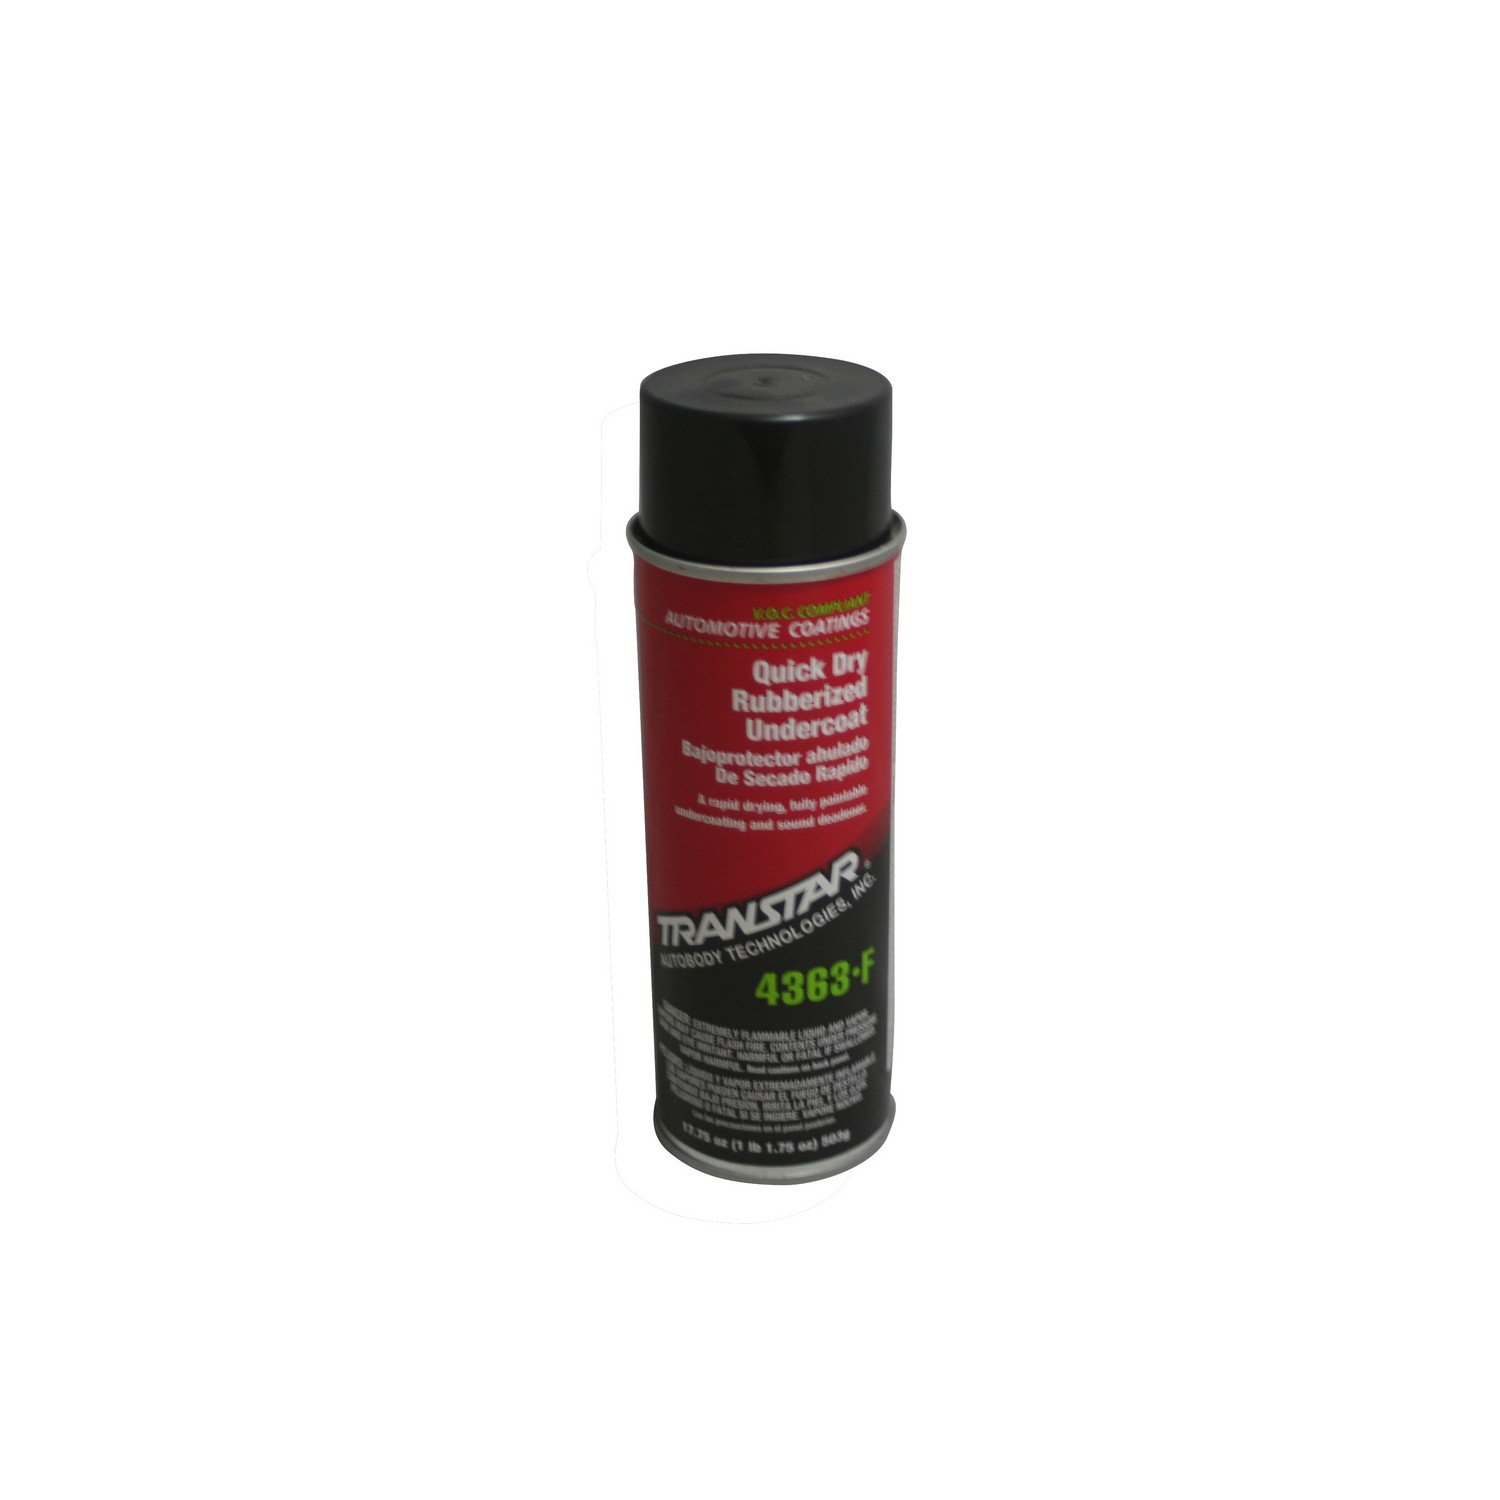 TRANSTAR (4363-F) Quick Dry Rubberized Undercoating - 17.75 oz. Aerosol by TRANSTAR